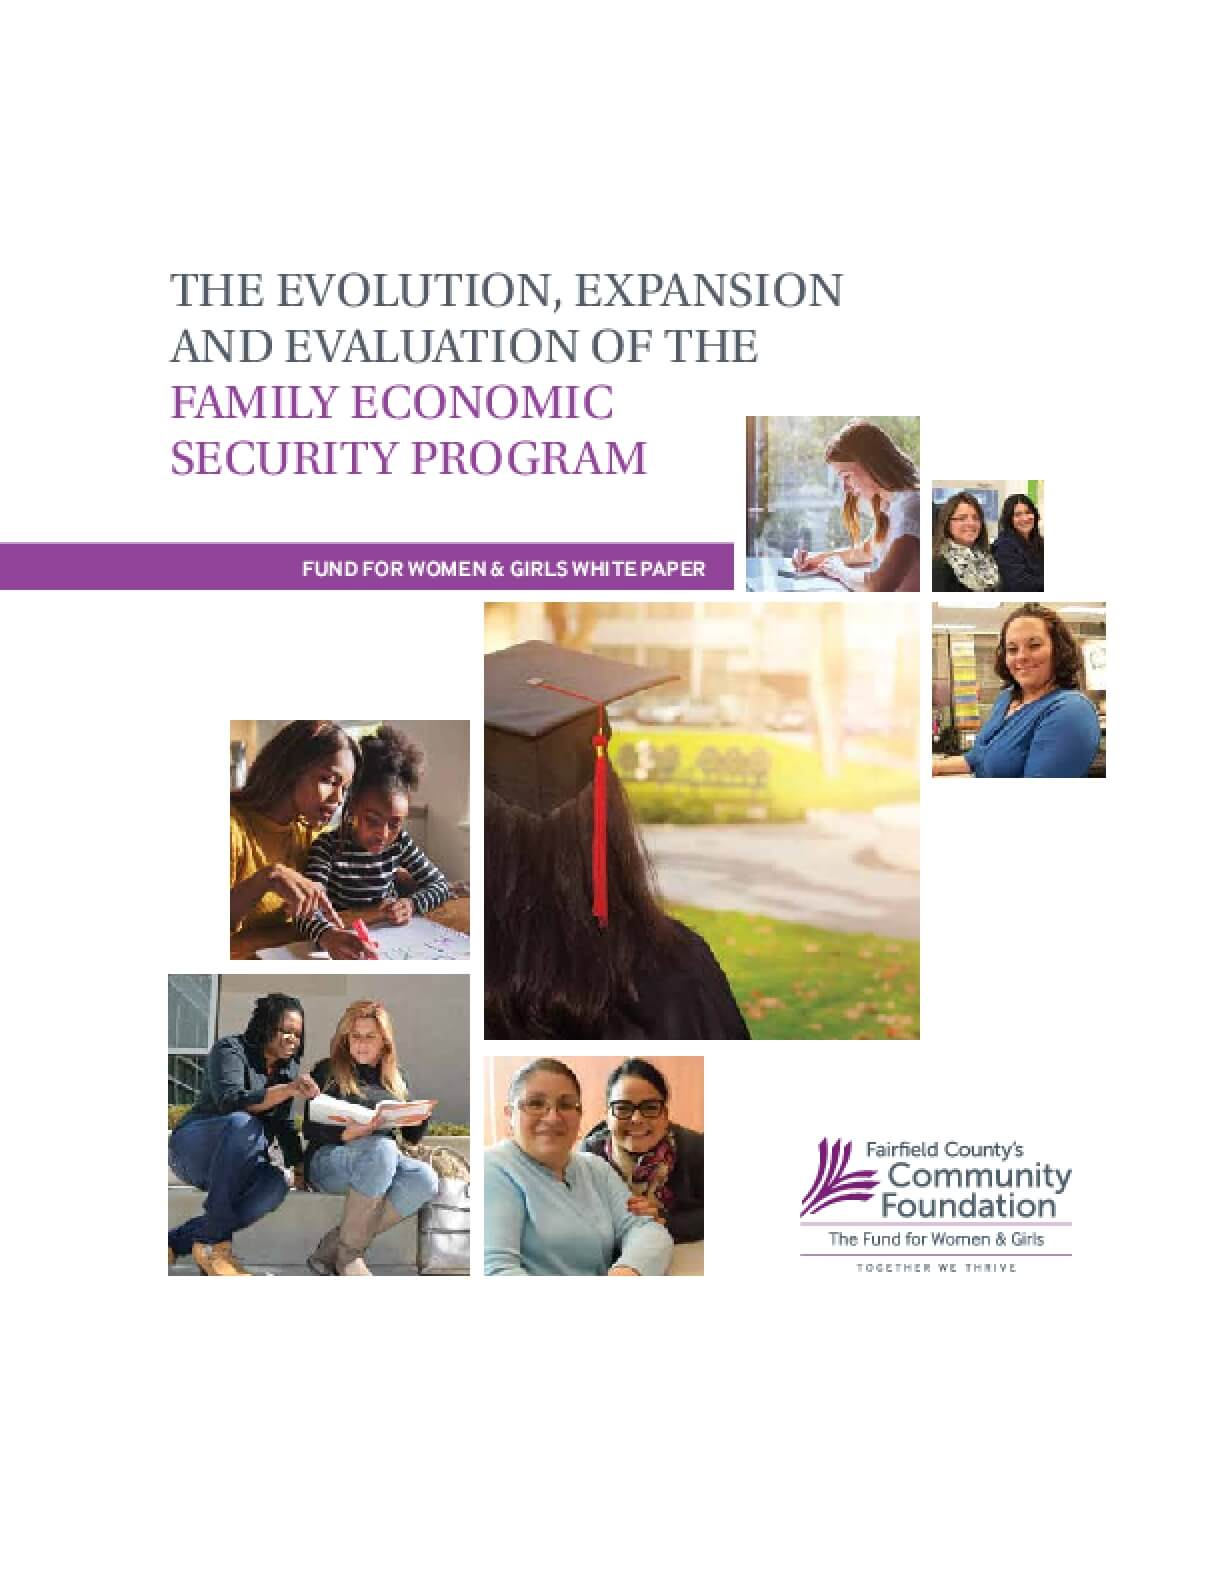 The Evolution, Expansion and Evaluation of the Family Economic Security Program